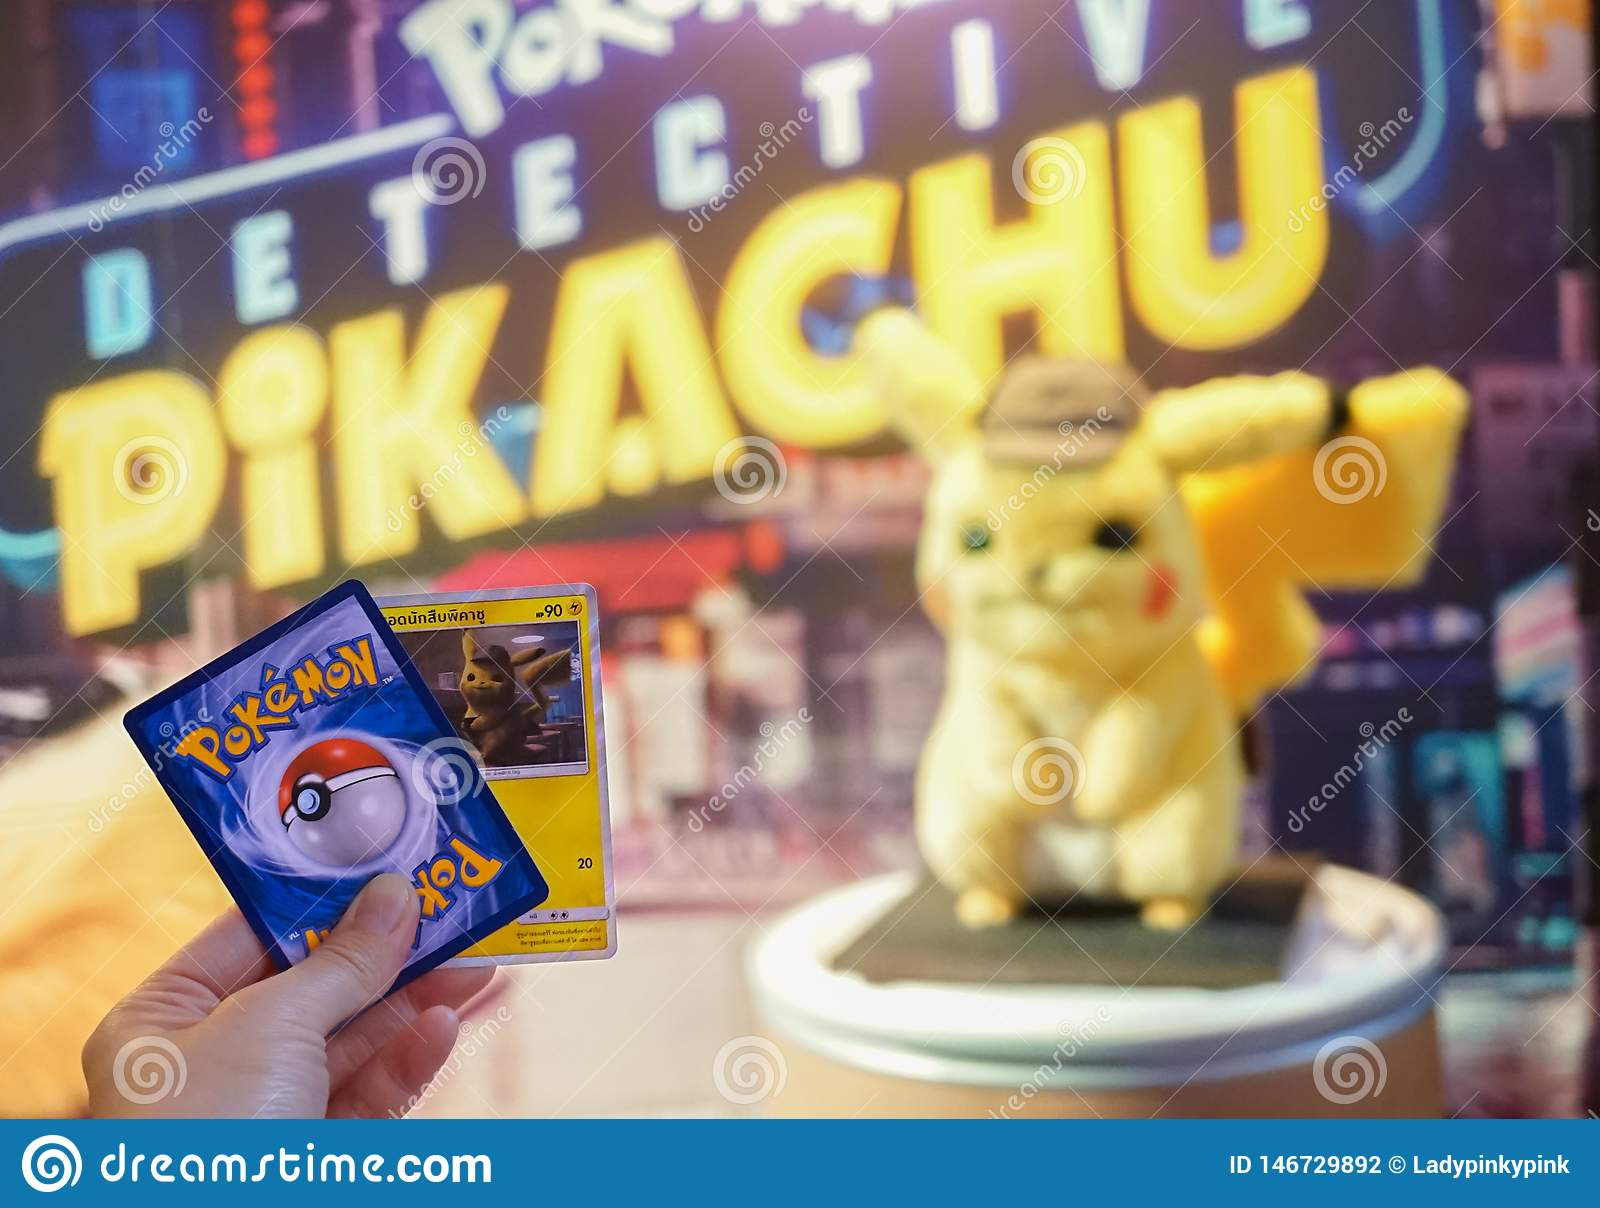 Bangkok Thailand May 4 2019 A Photo Of A Hand Holding Pokemon Card Game Pokemon Detective Pikachu Movie Standee In Front Of Editorial Photography Image Of Famous Cinema 146729892